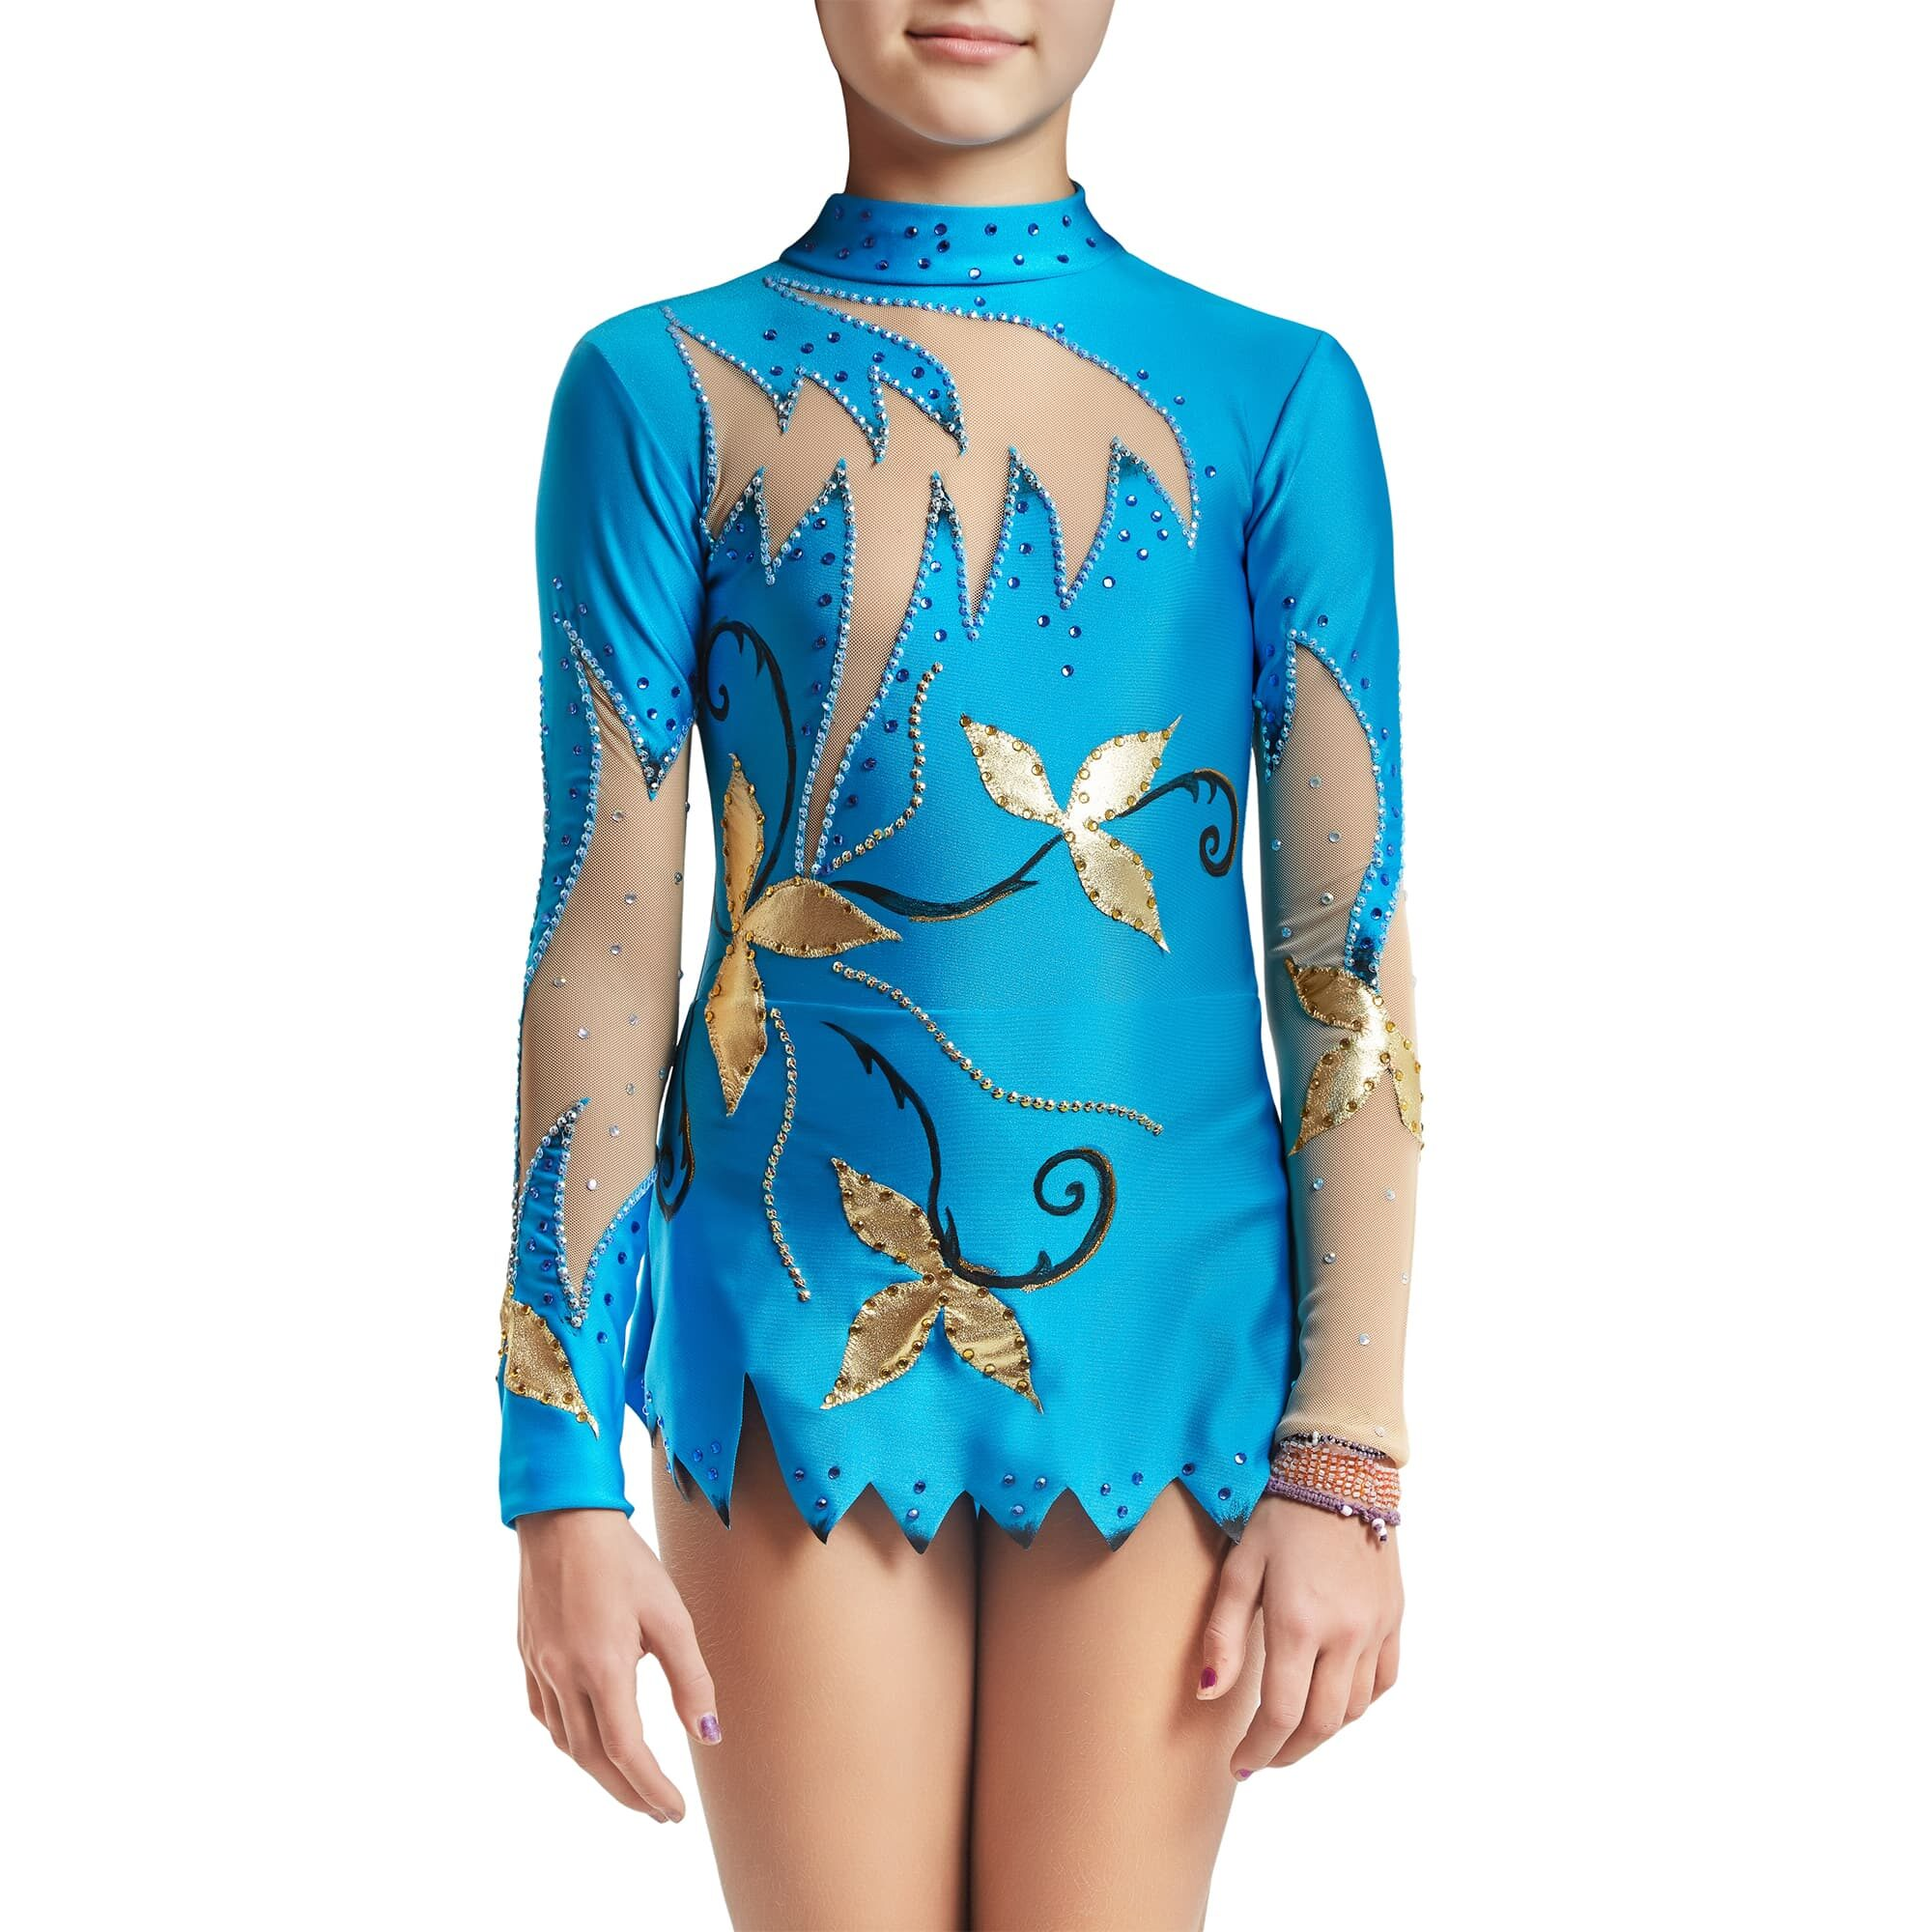 Blue, gold, black Rhythmic Gymnastics Leotard 118 for competitions